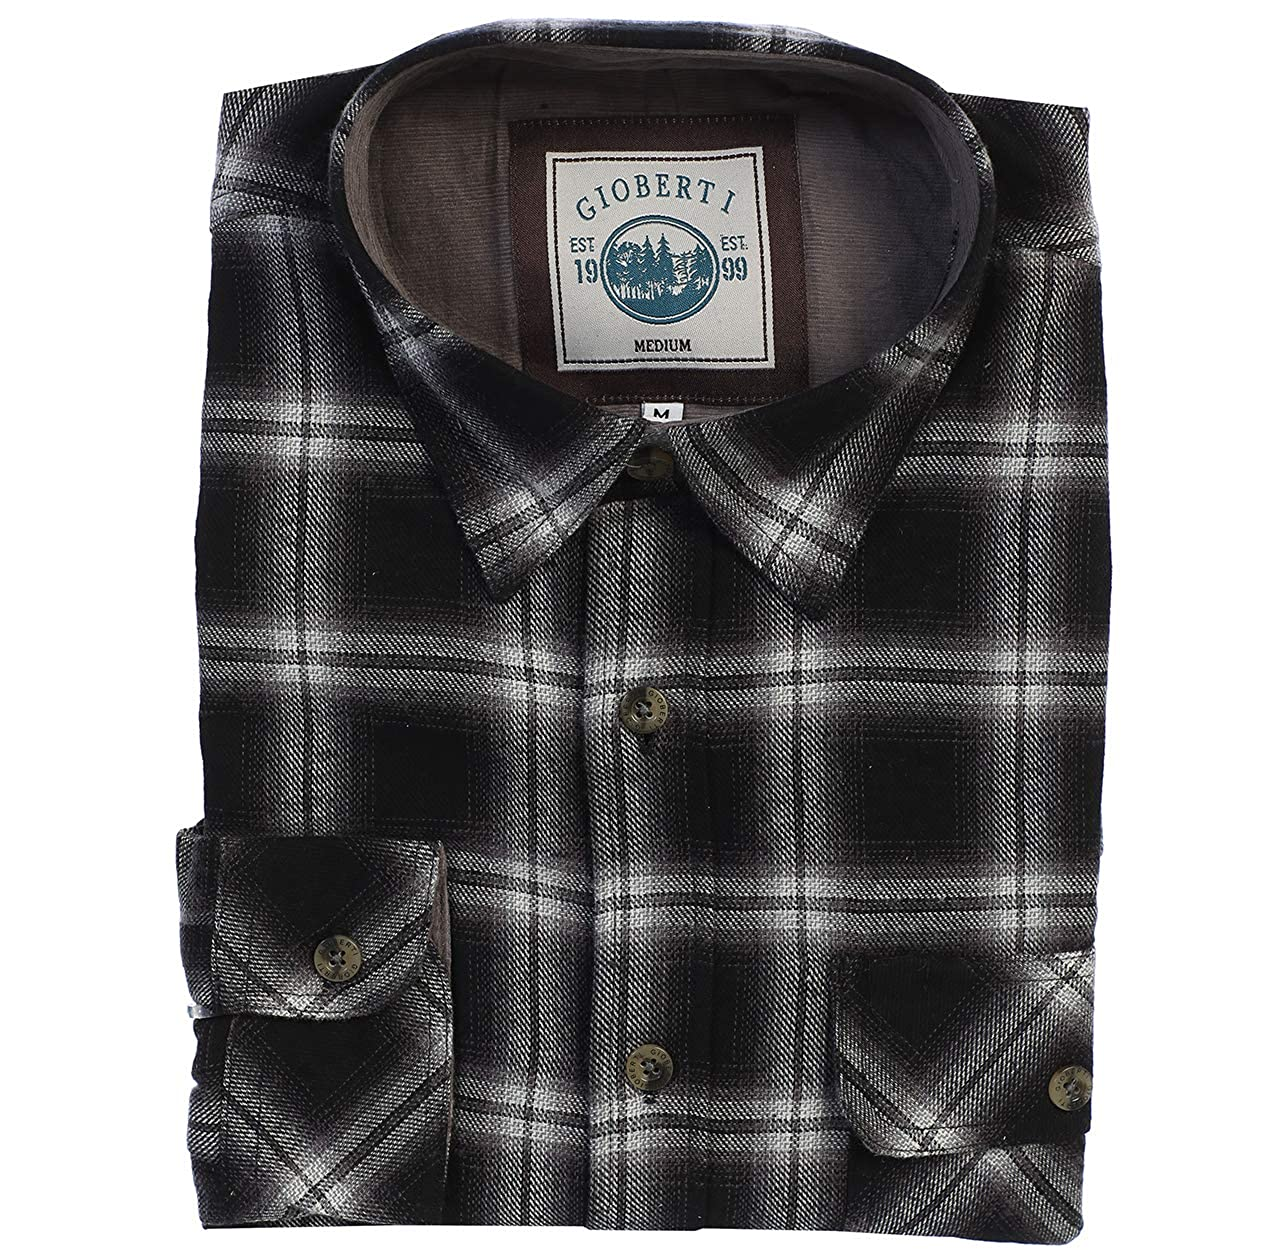 Gioberti Mens 100/% Cotton Brushed Flannel Plaid Checkered Shirt with Corduroy Contrast